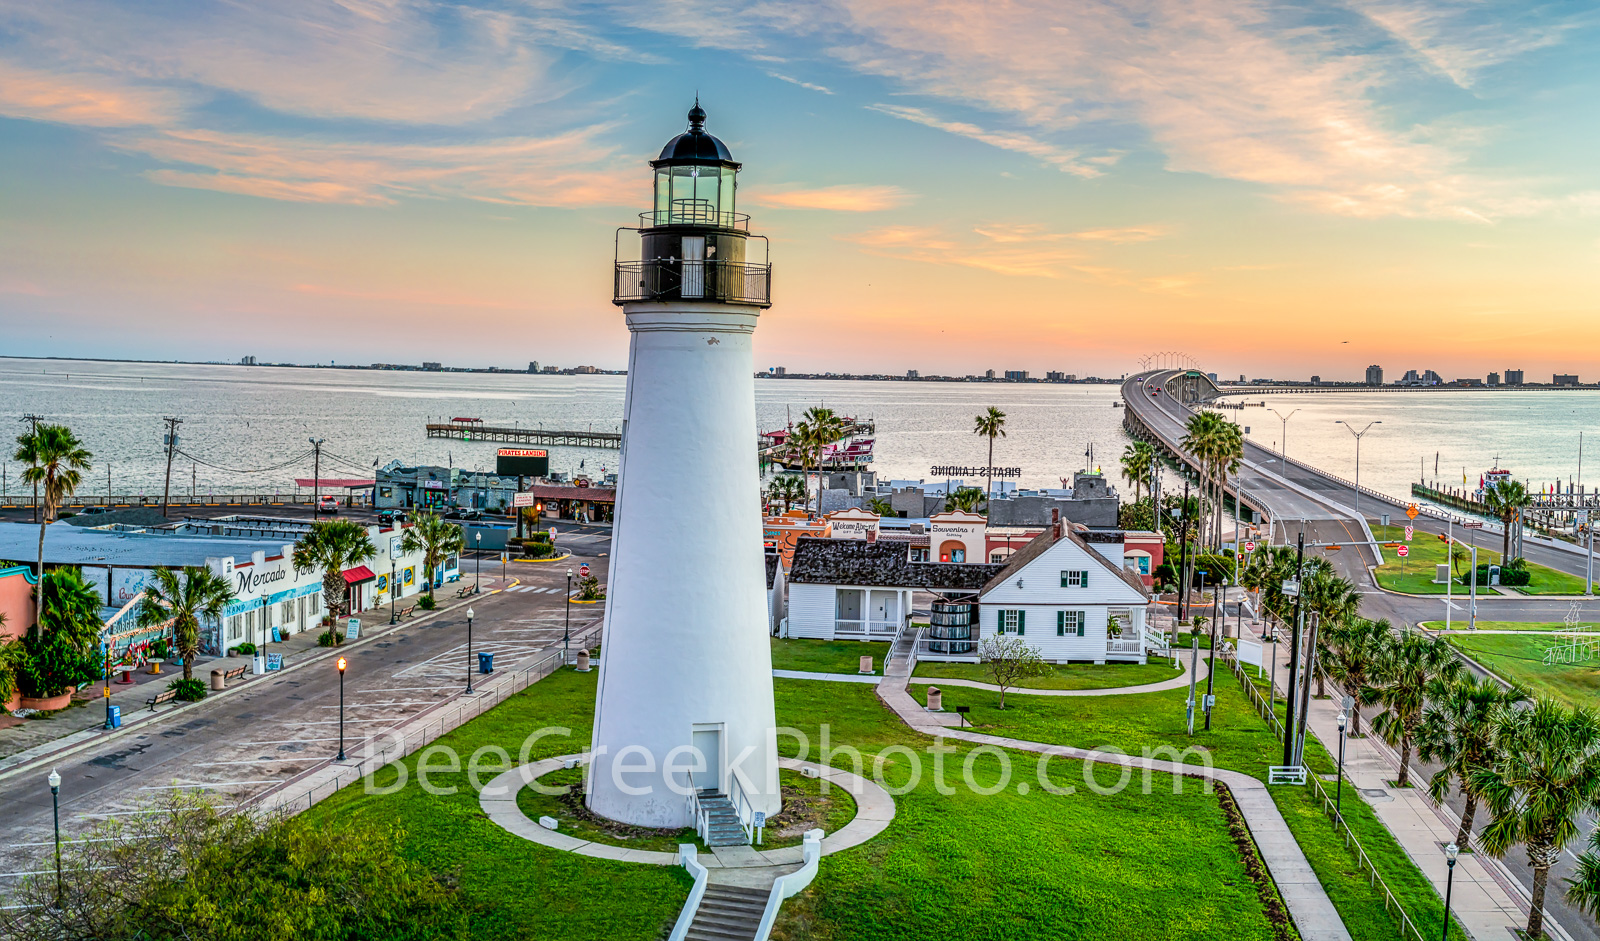 Sunrise at Port Isabel Lighthouse - Port isabel lighthouse was built in 1852 for the sea capitains to help them navigate the...